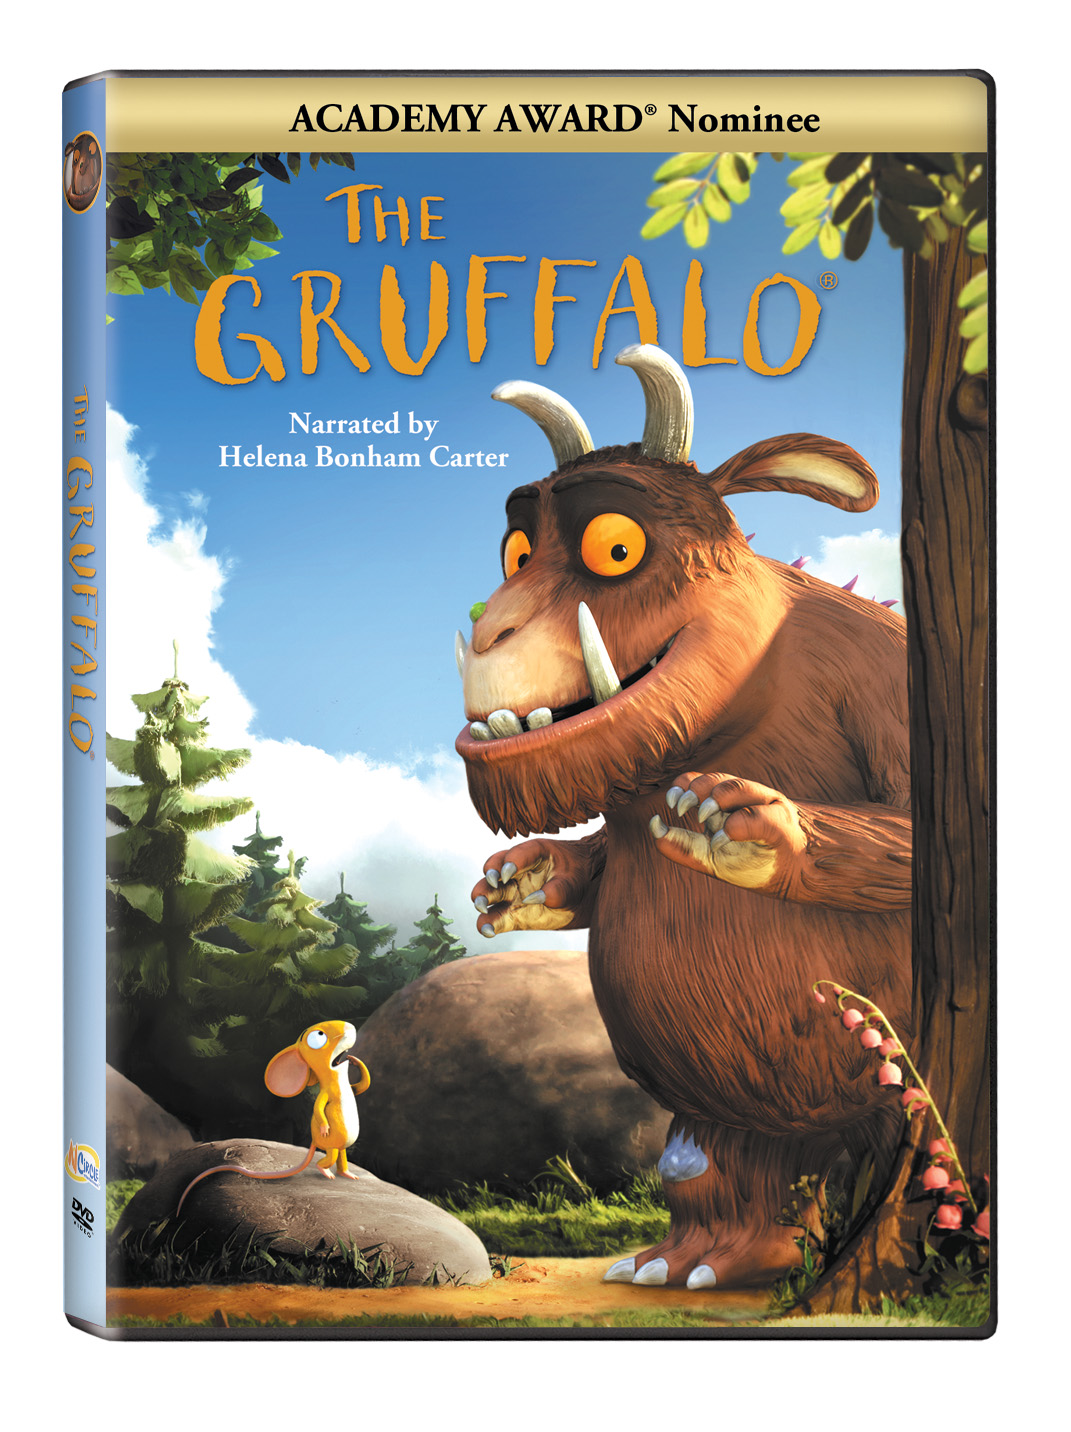 Gruffalo Movie Characters